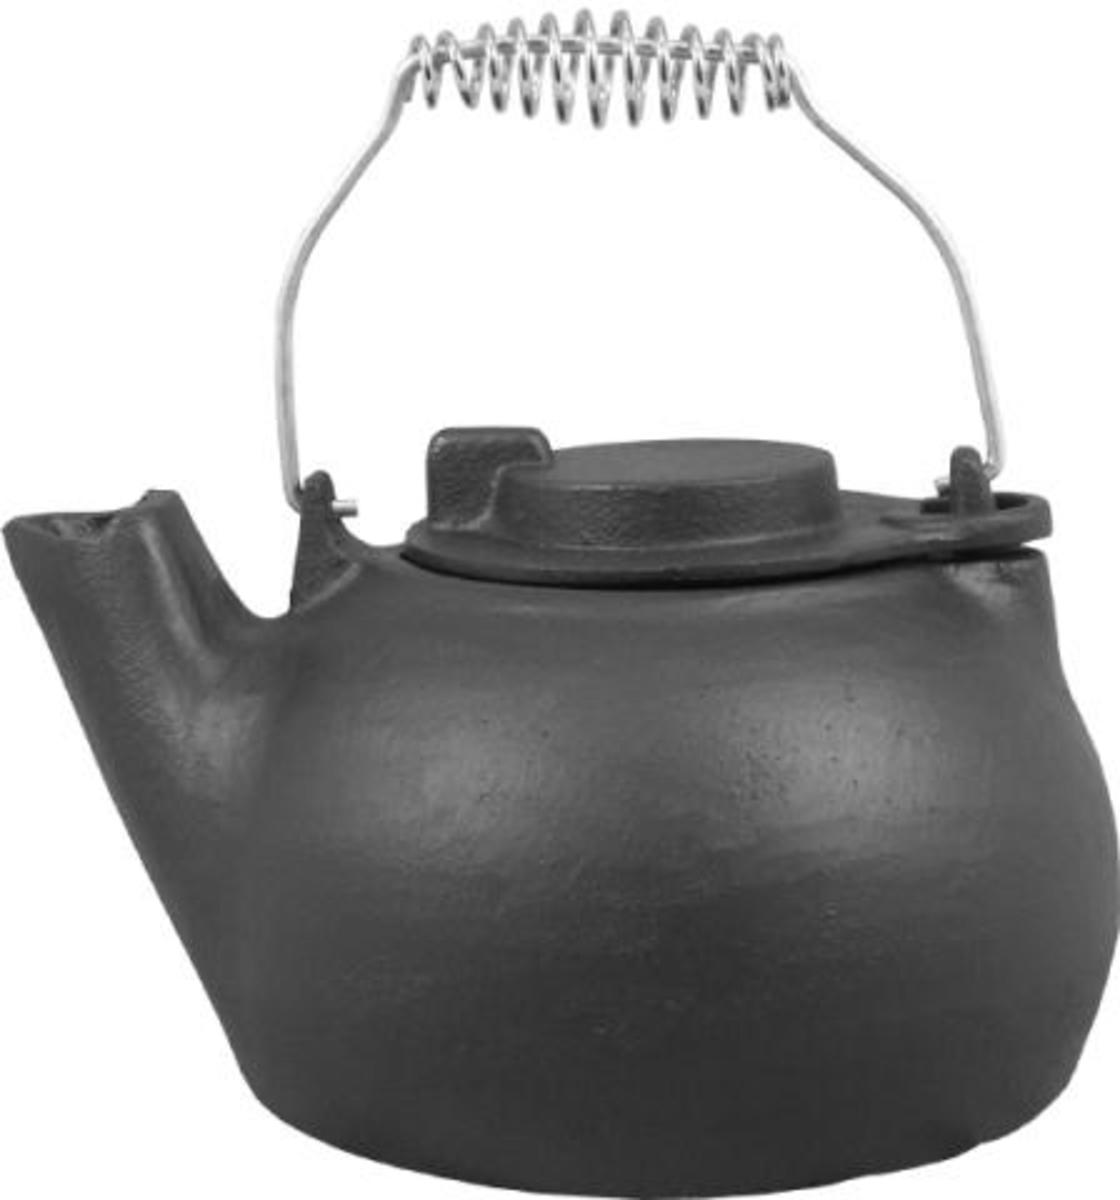 Kettle suitable for use on a Wood Burning Stove